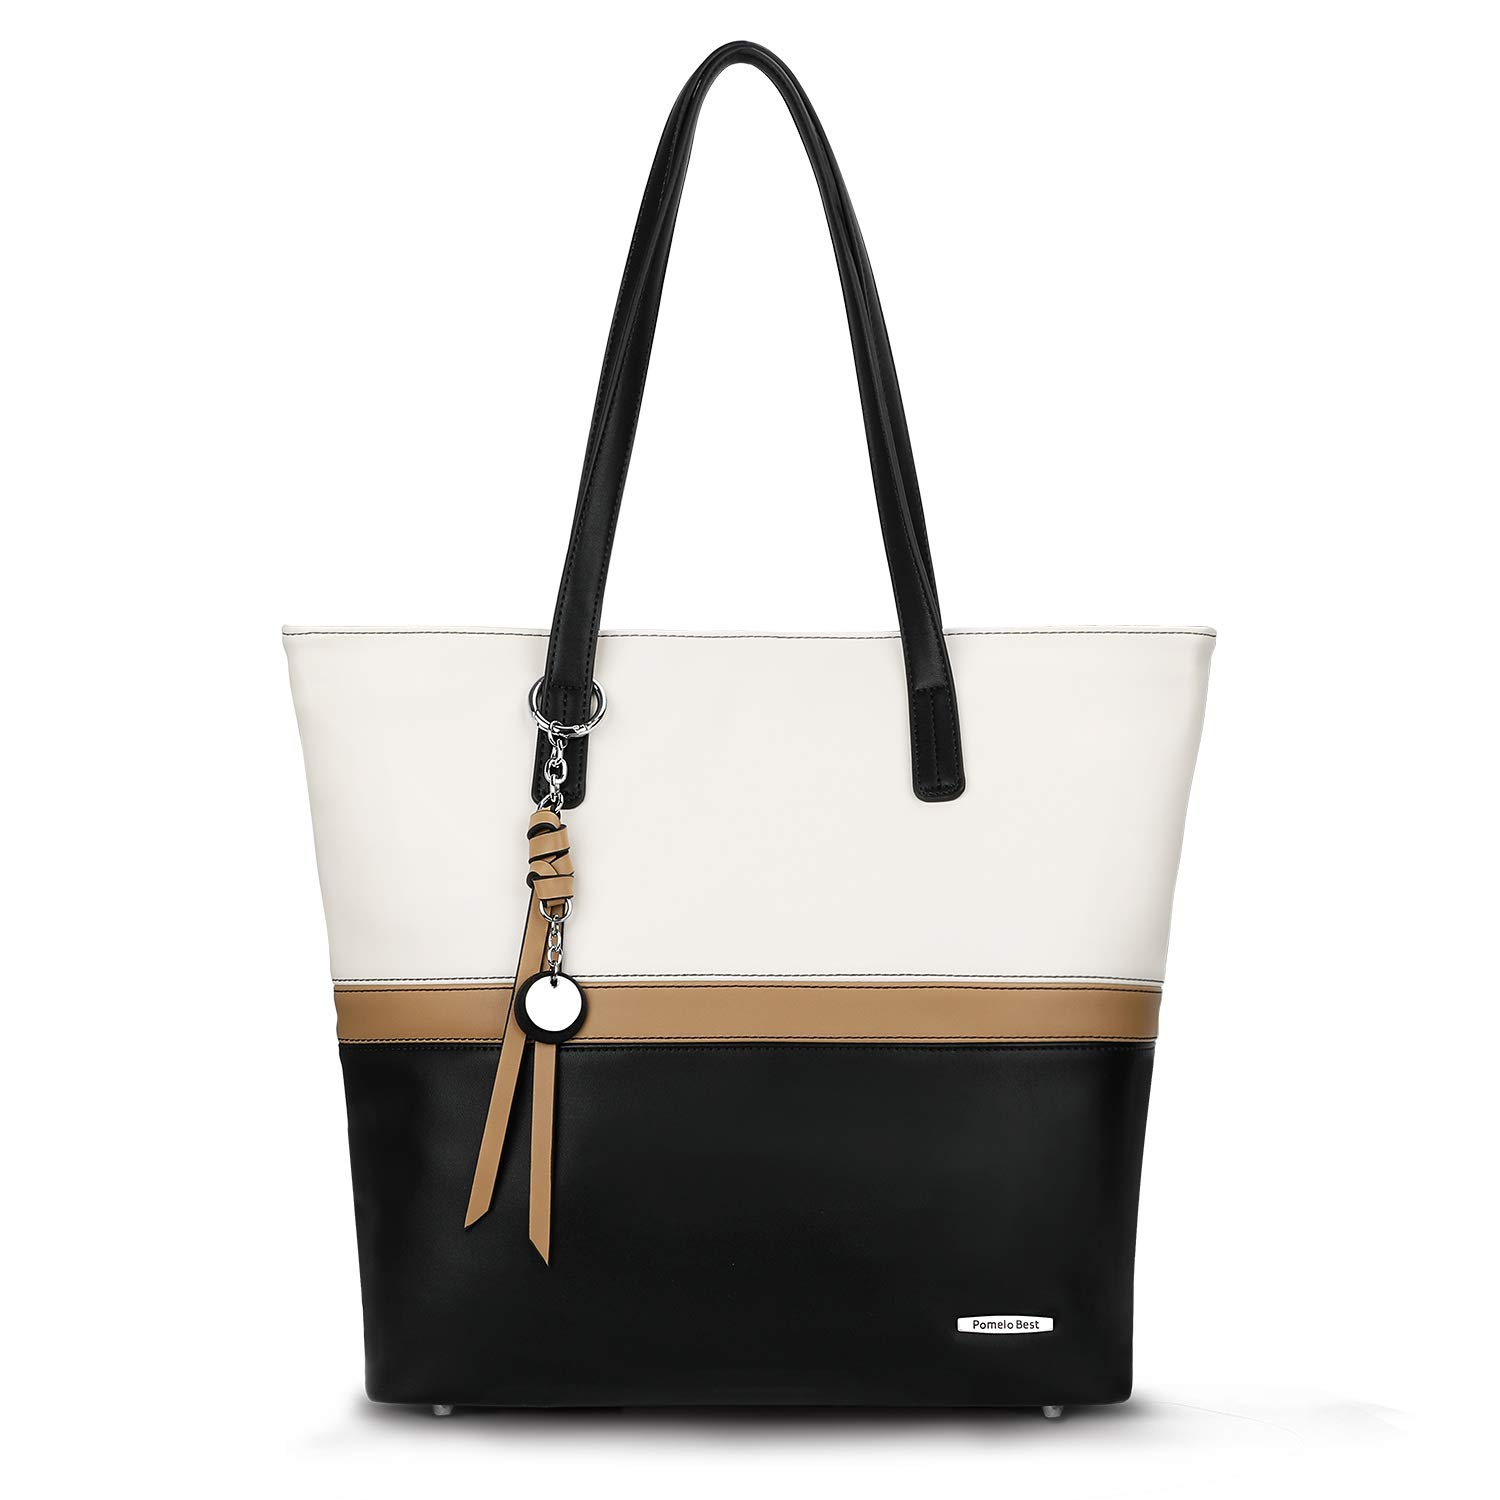 5adadb94b Tote Bags for Women, Womens Shopper Bag with Large Compartment